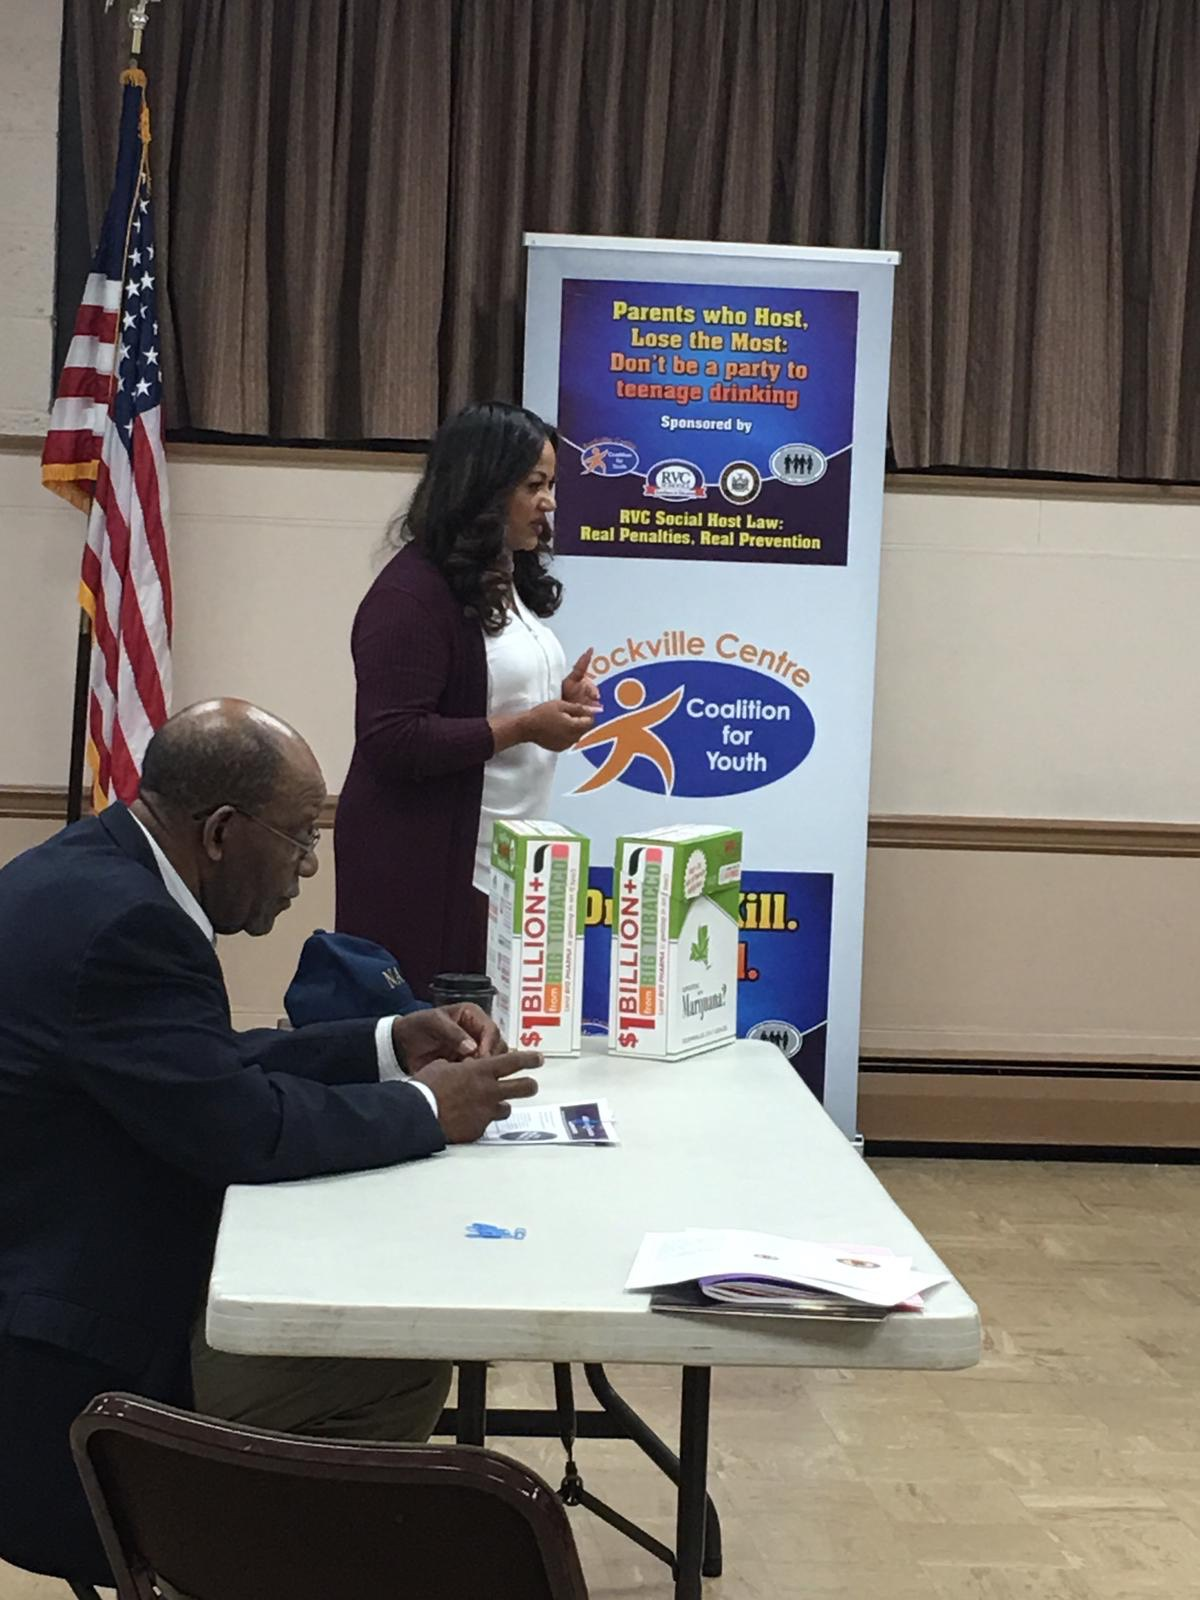 Speaking at the local NAACP chapter in Freeport Long Island in conjunction with the Rockville Center Coalition for youth.